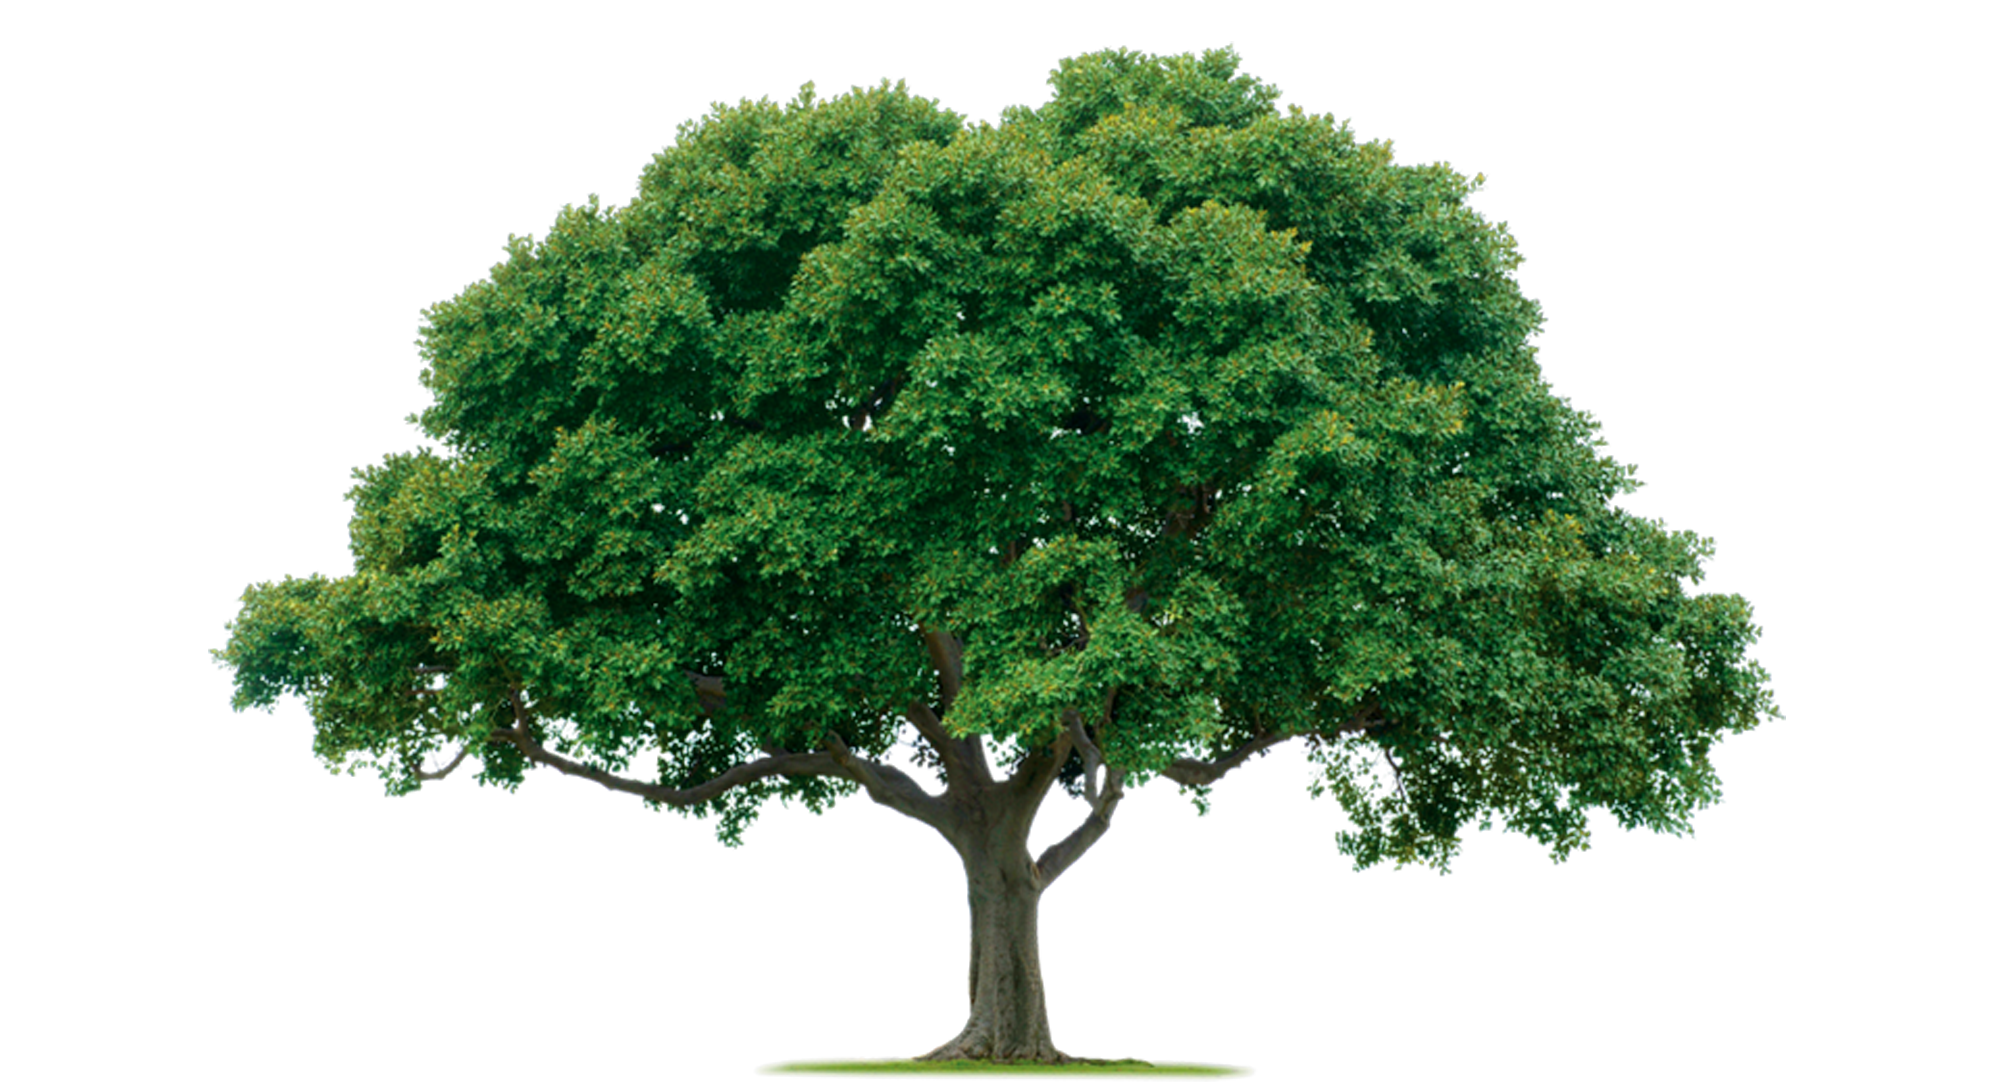 Home Tree | Free Images at Clker.com  vector clip art online, royalty